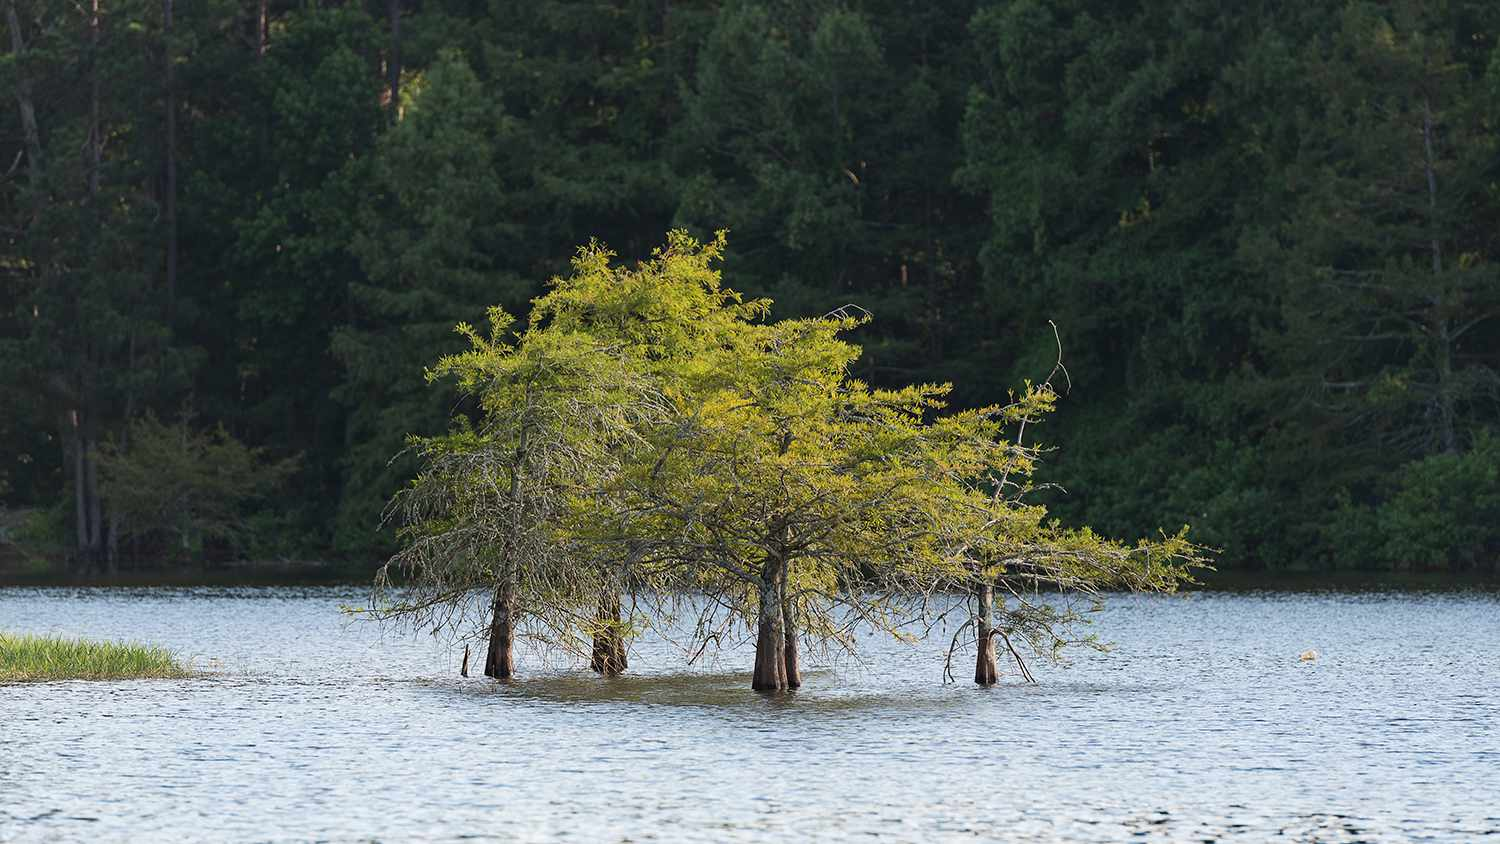 Submerged trees in Toledo Bend